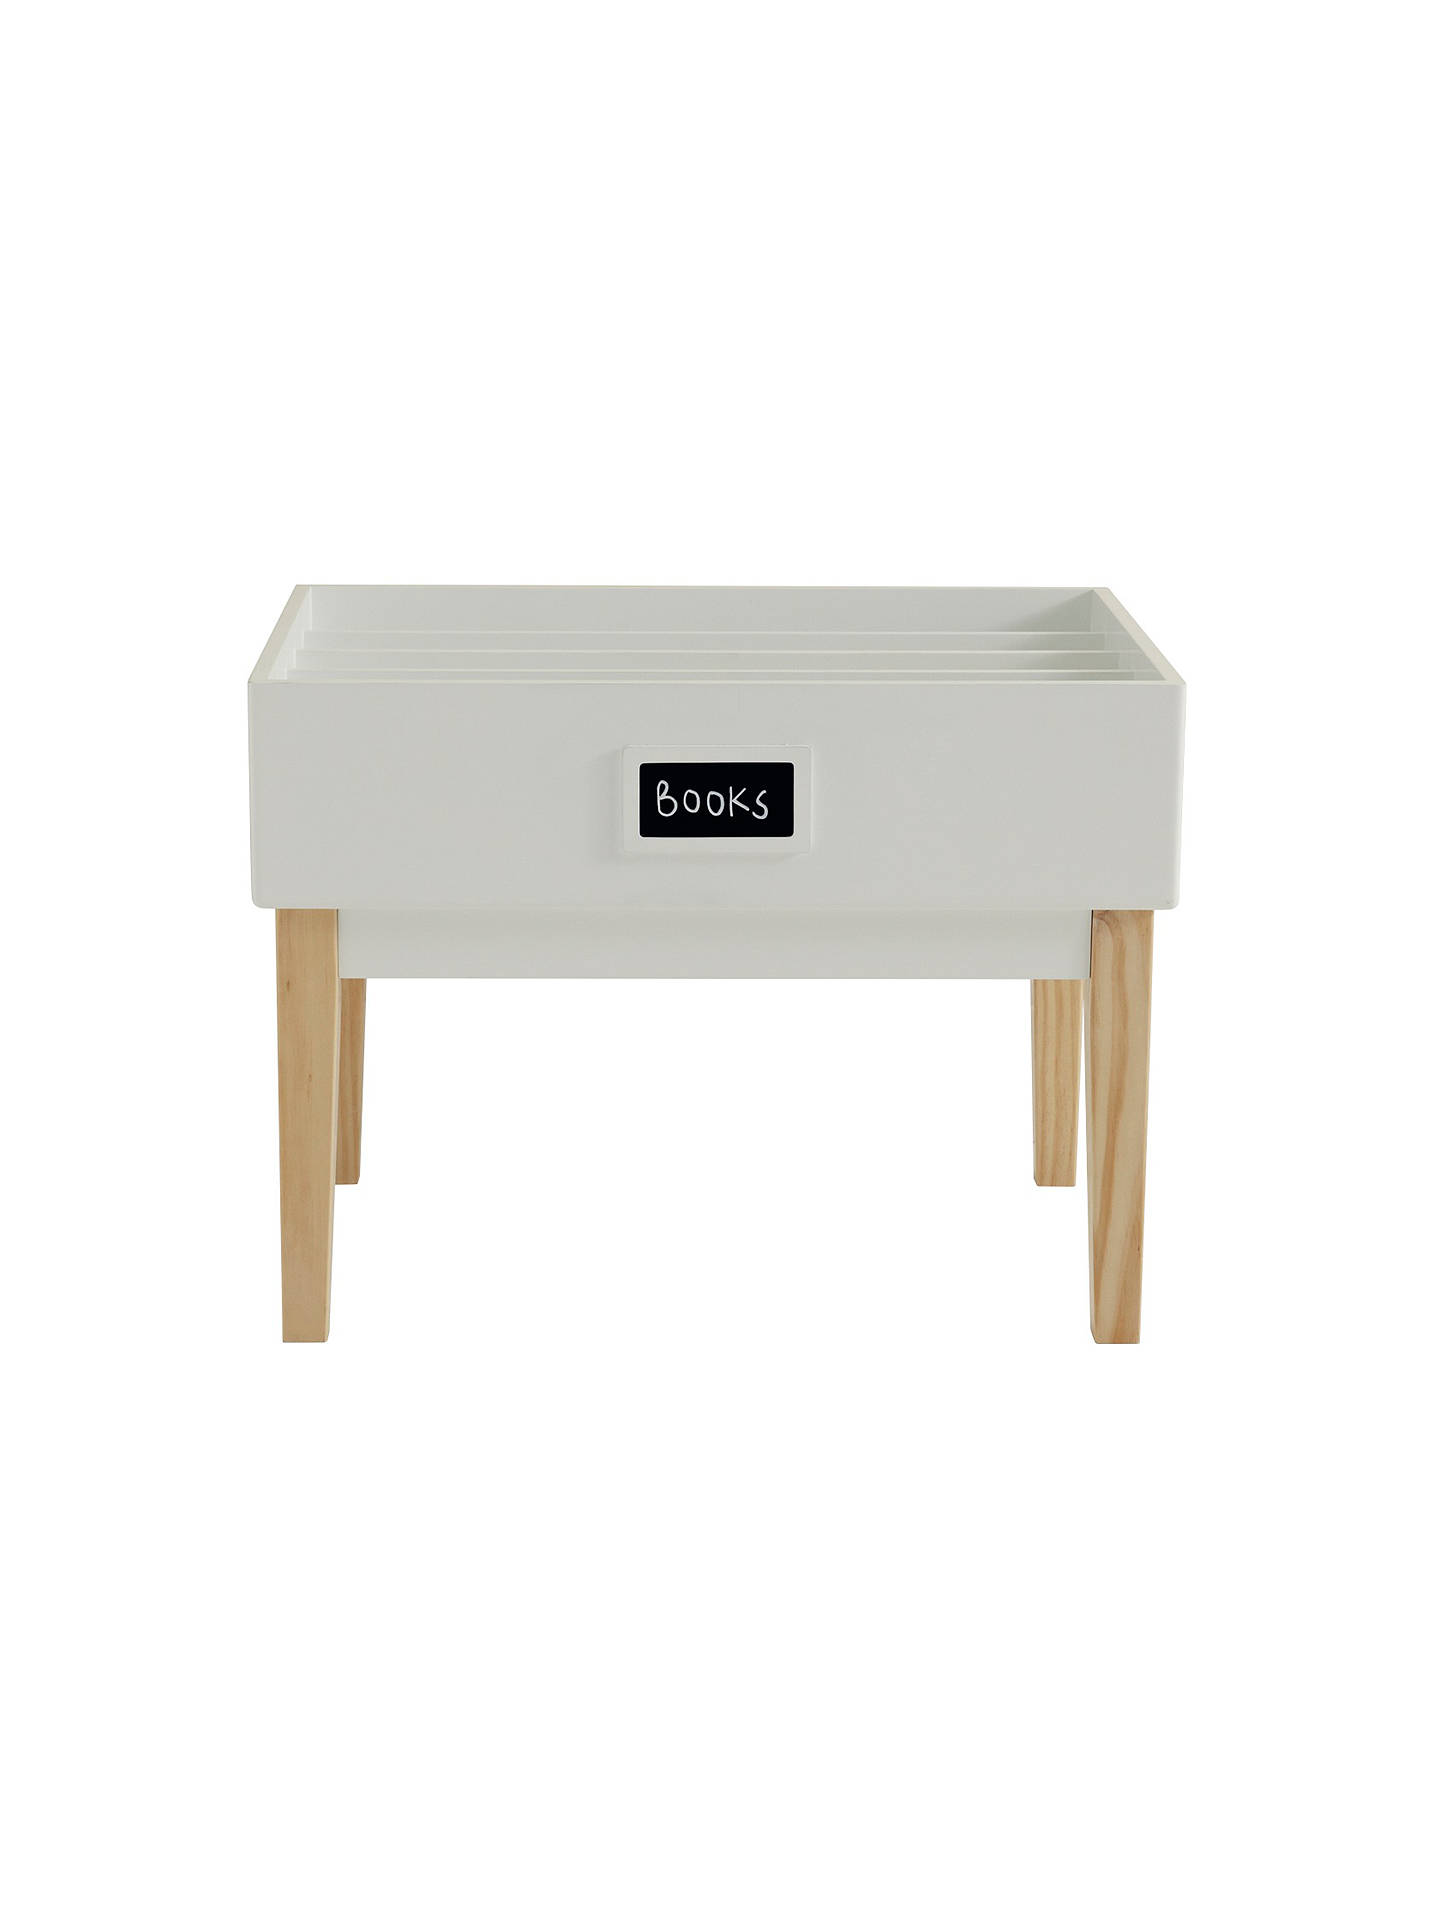 Great Little Trading Co Potter Library Table, White by Great Little Trading Co